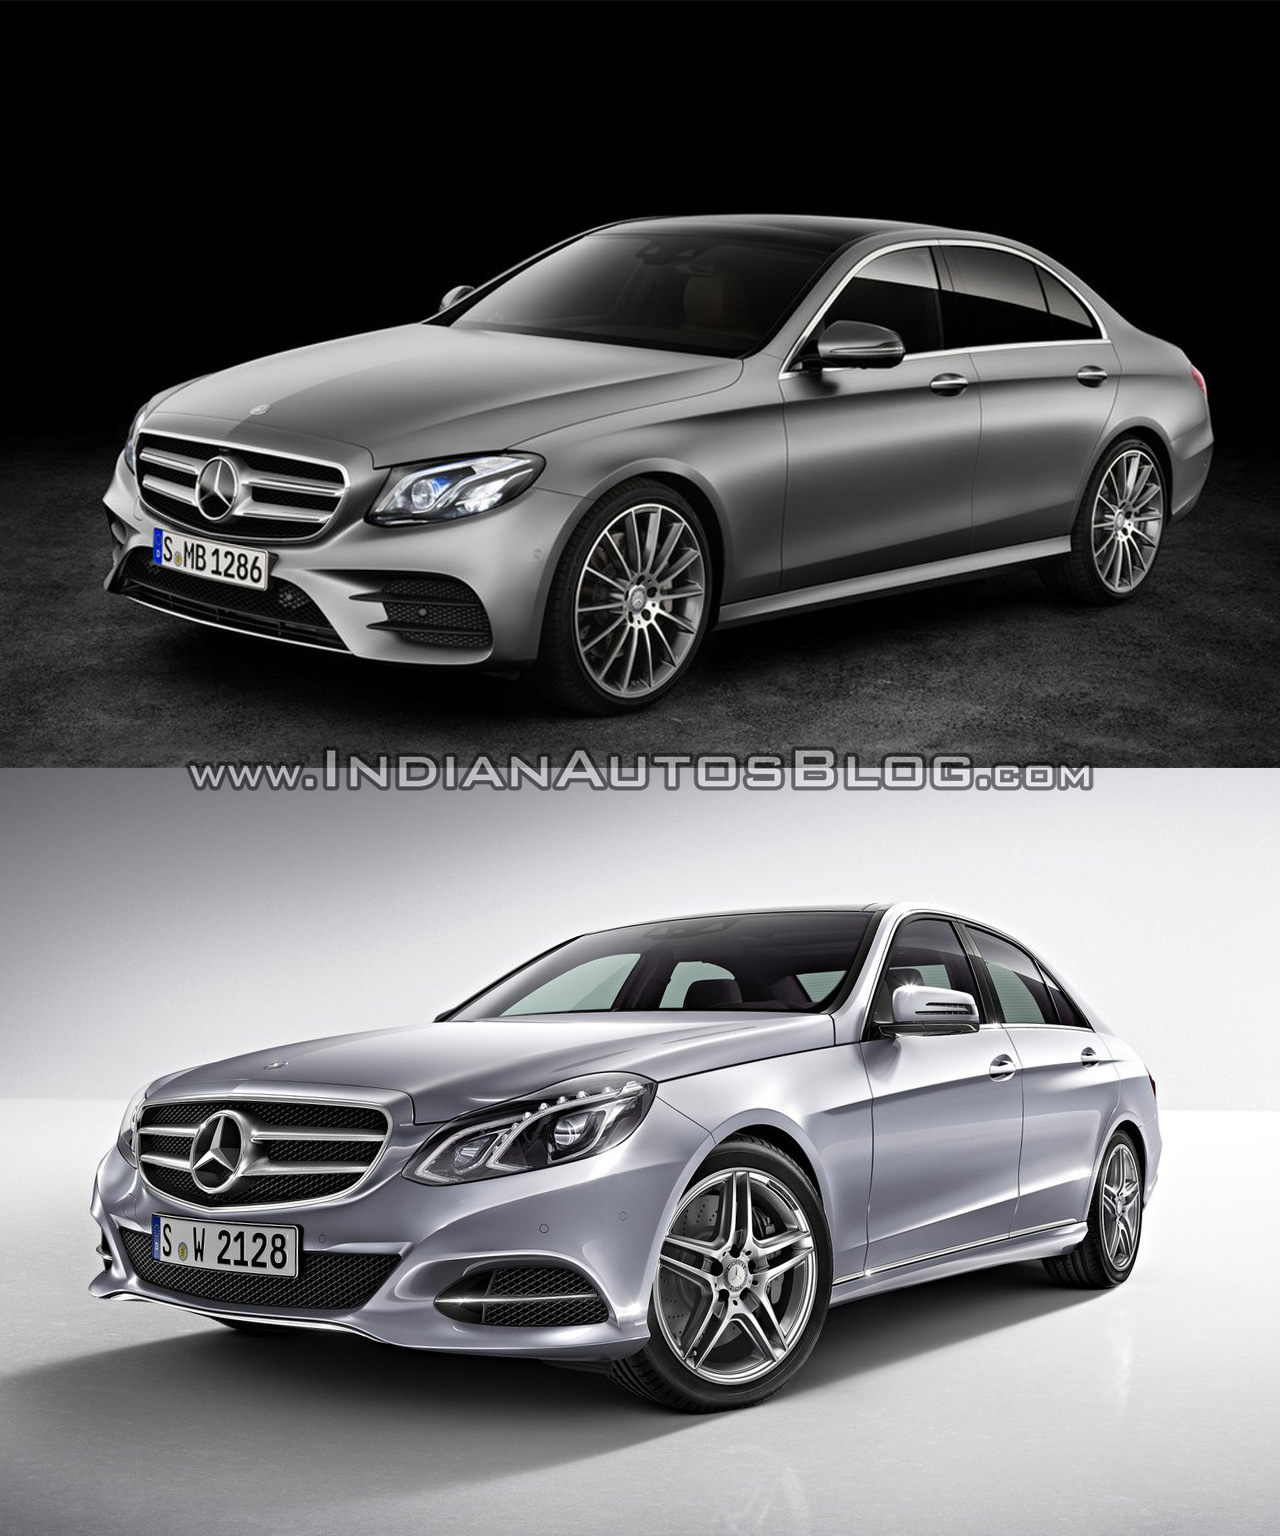 2016 mercedes e class w213 vs mercedes e class w212. Black Bedroom Furniture Sets. Home Design Ideas